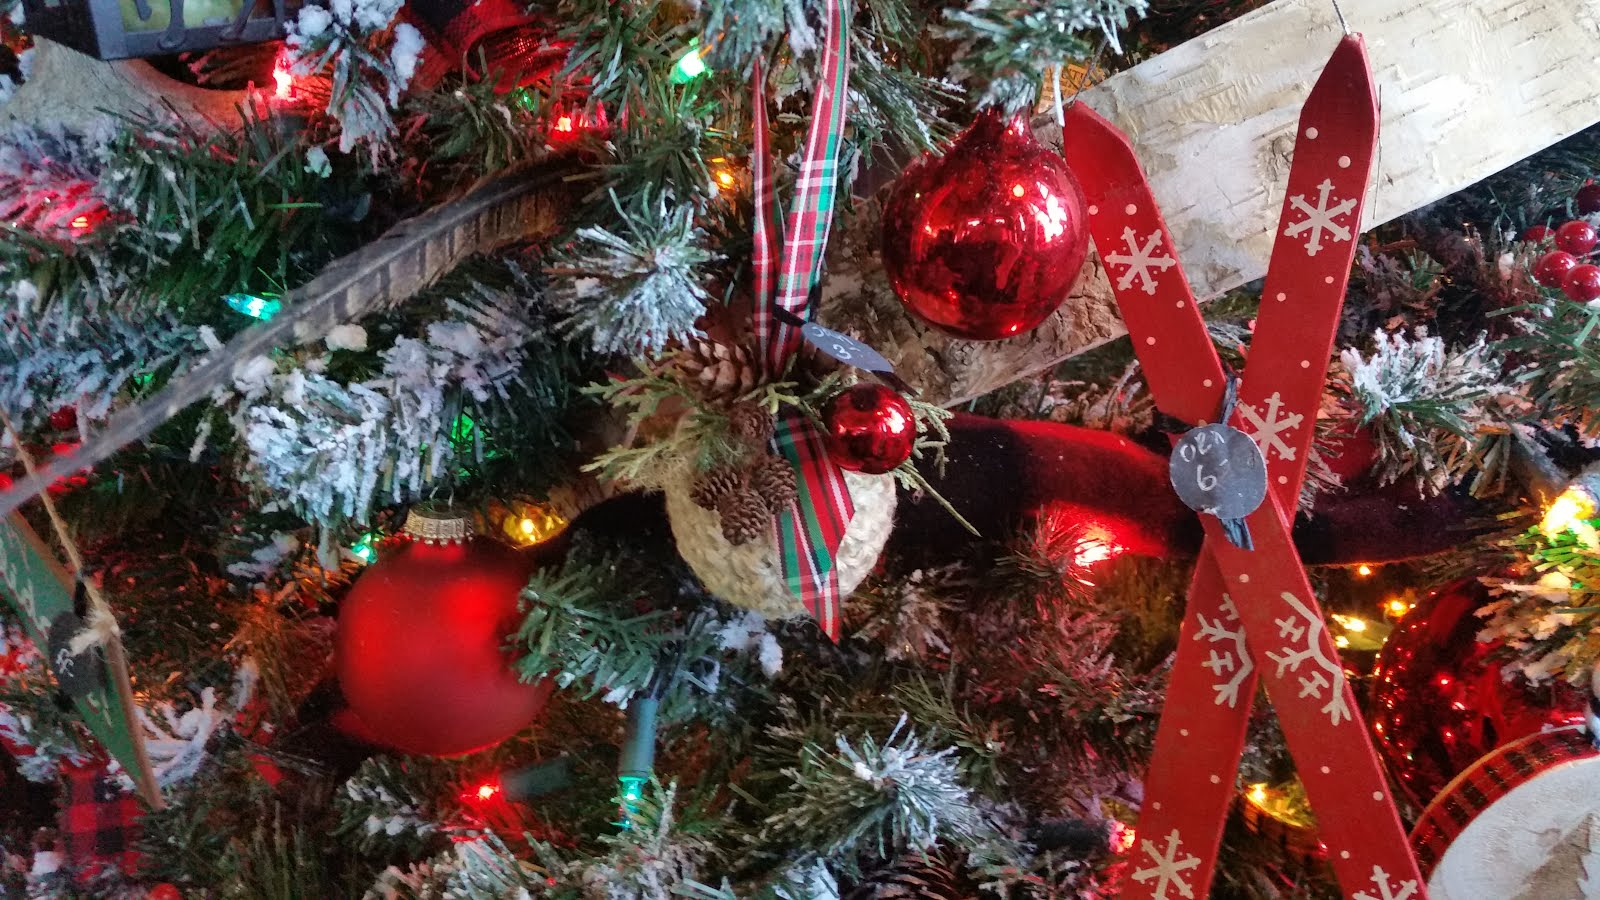 HOLIDAY OPEN HOUSE EXTRAVAGANZA